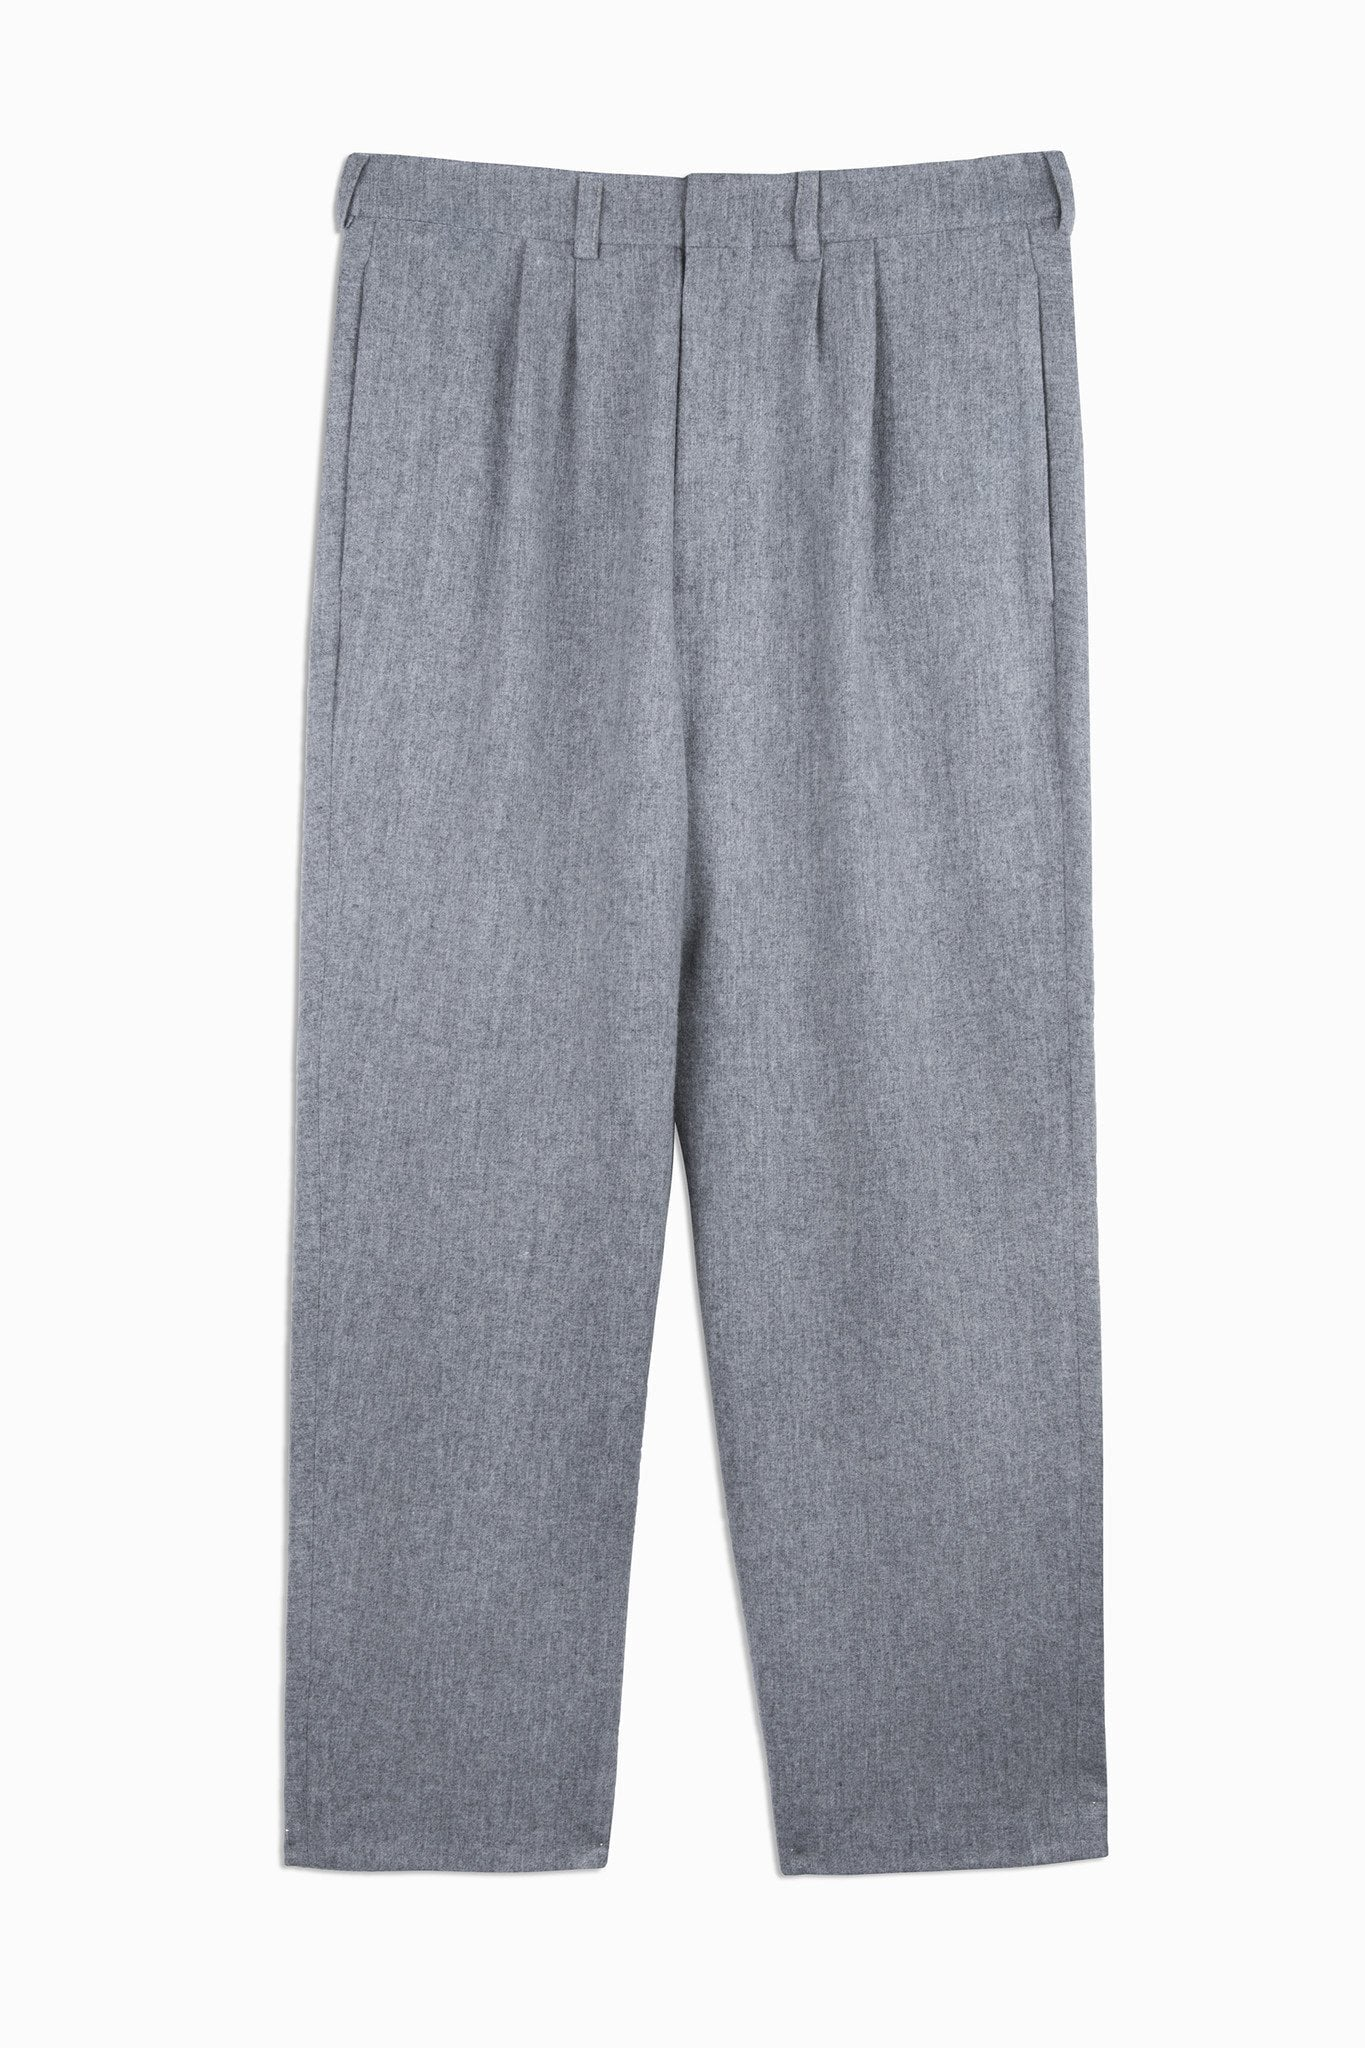 Pants Paradiso - light gray